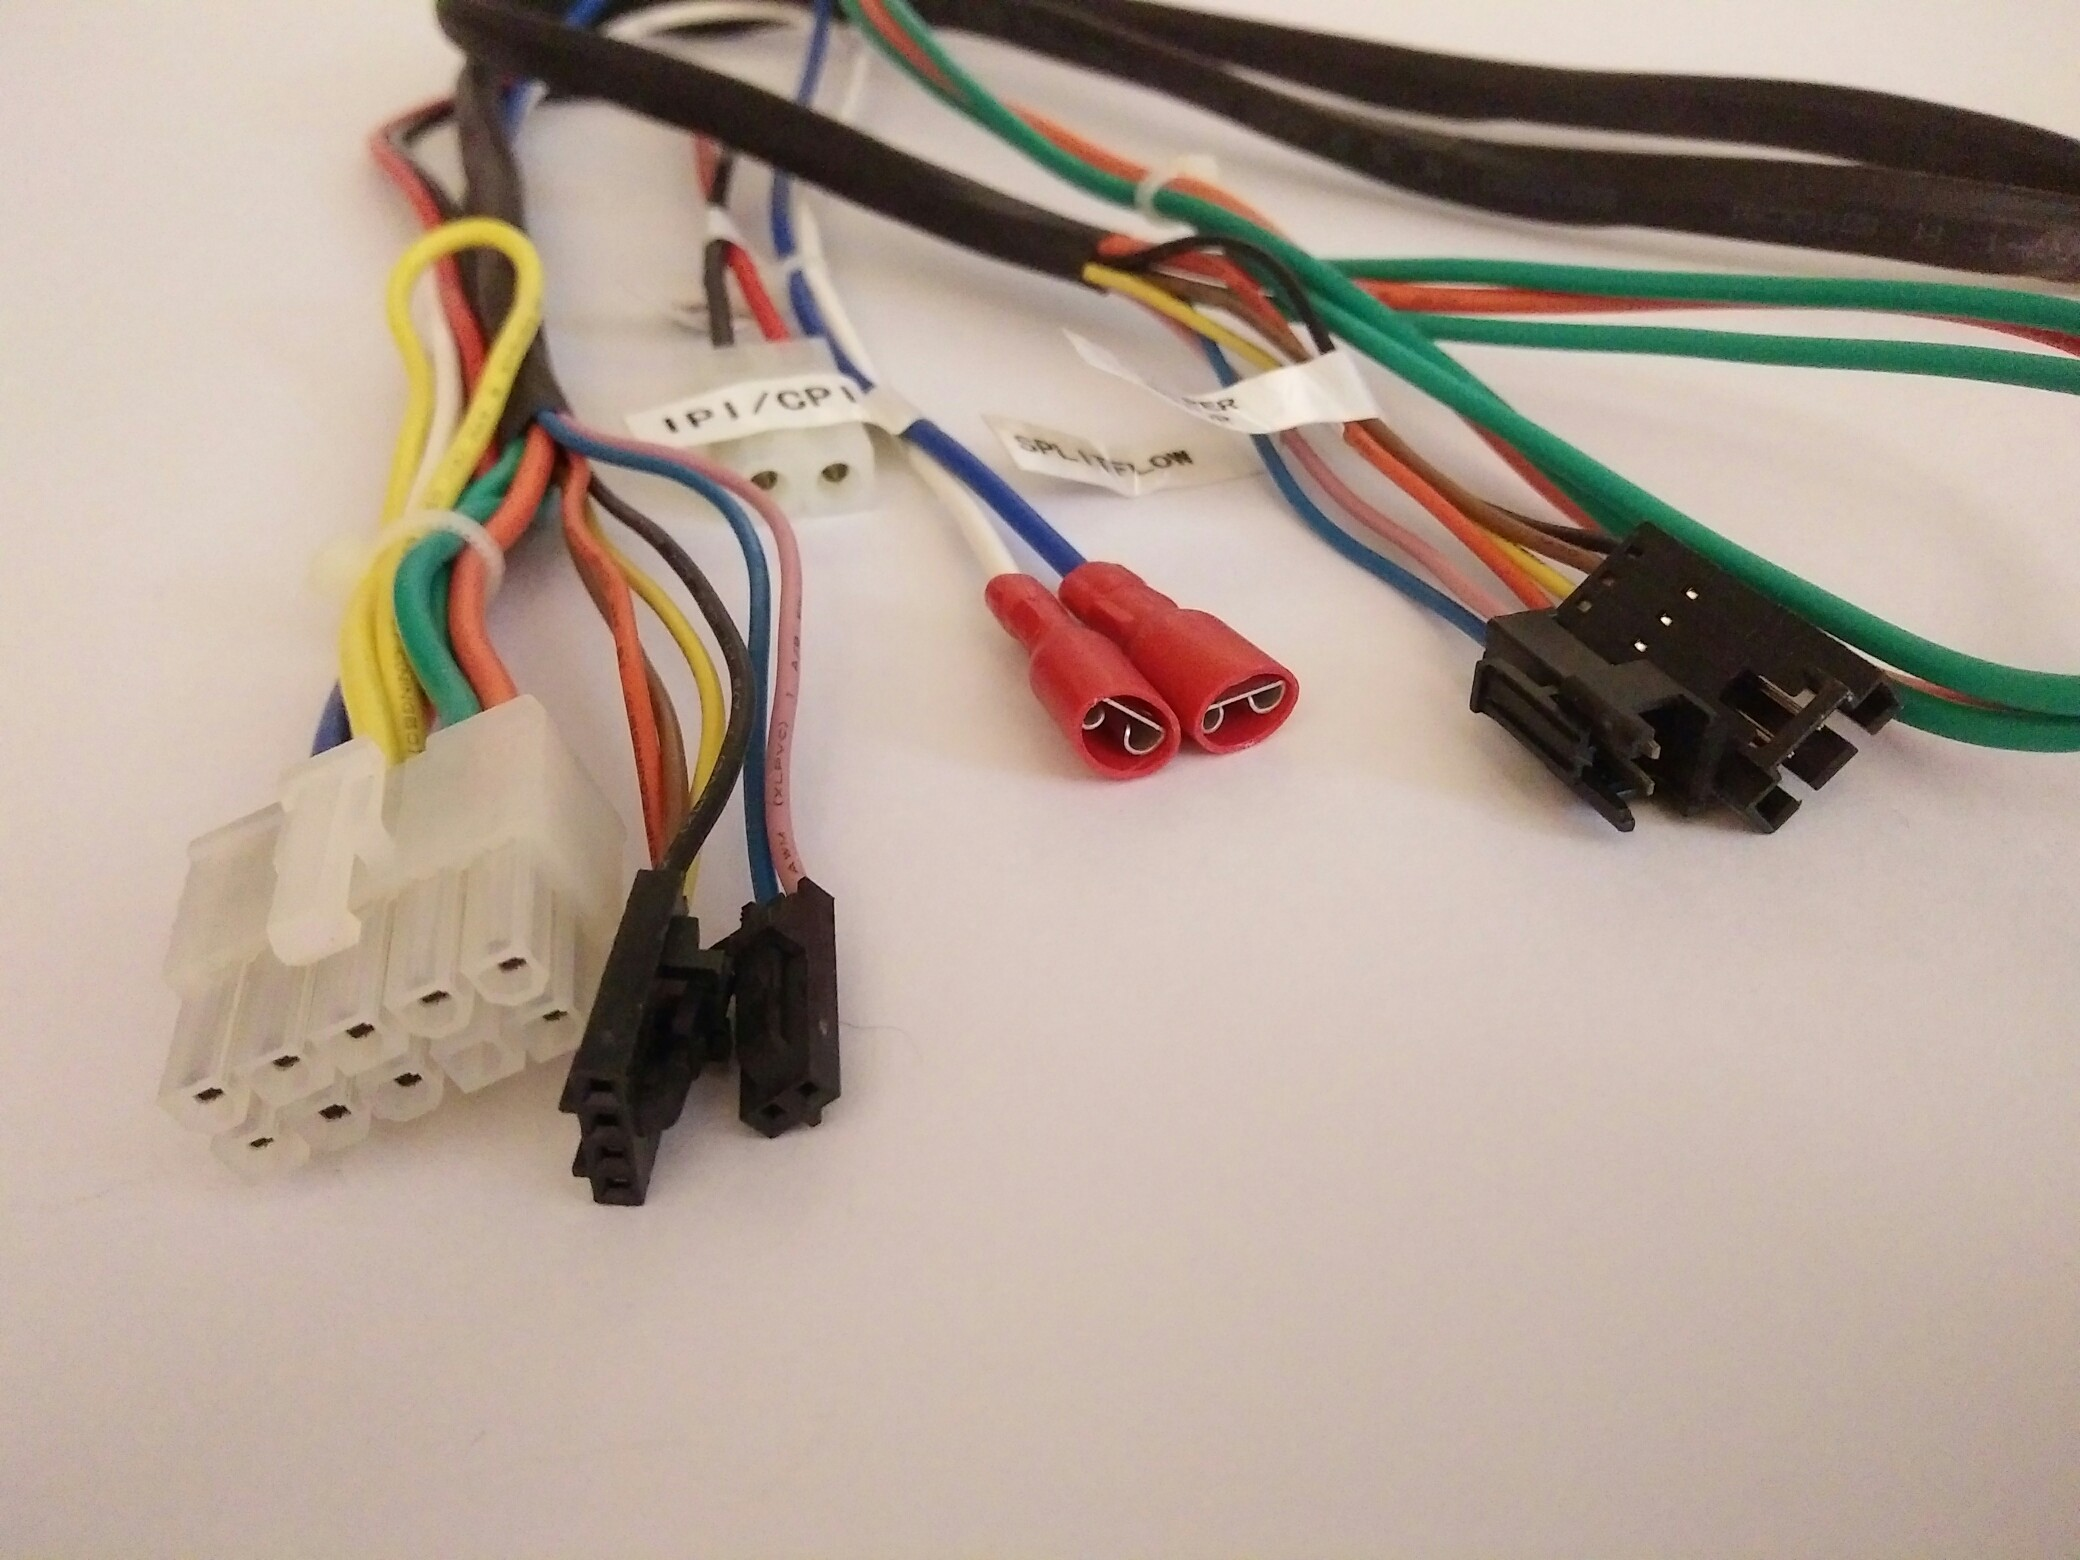 wire harness for industrial equipment